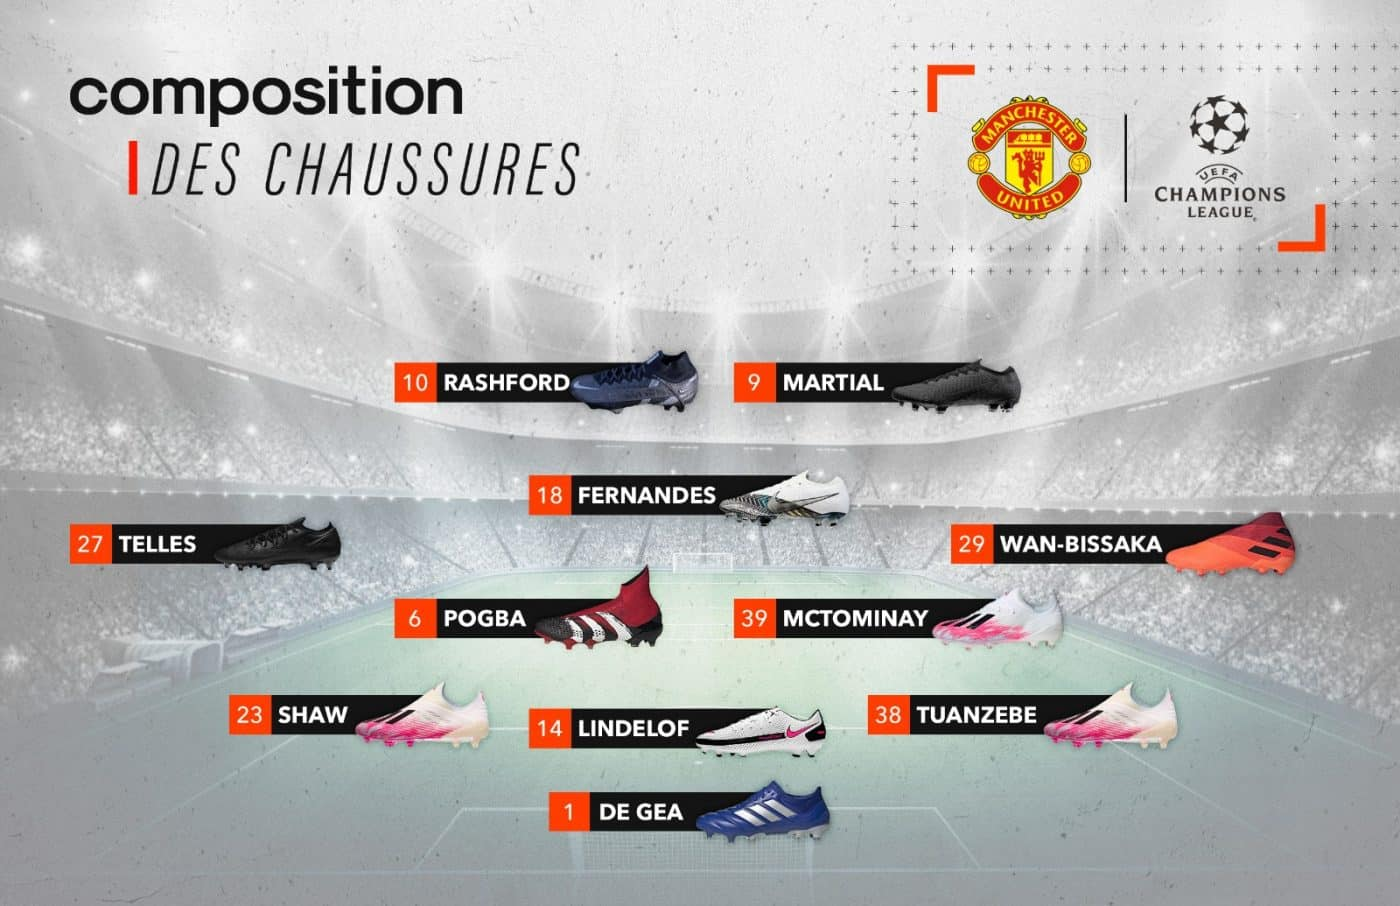 compos-psg-manchester-united-chaussures-footpack-2